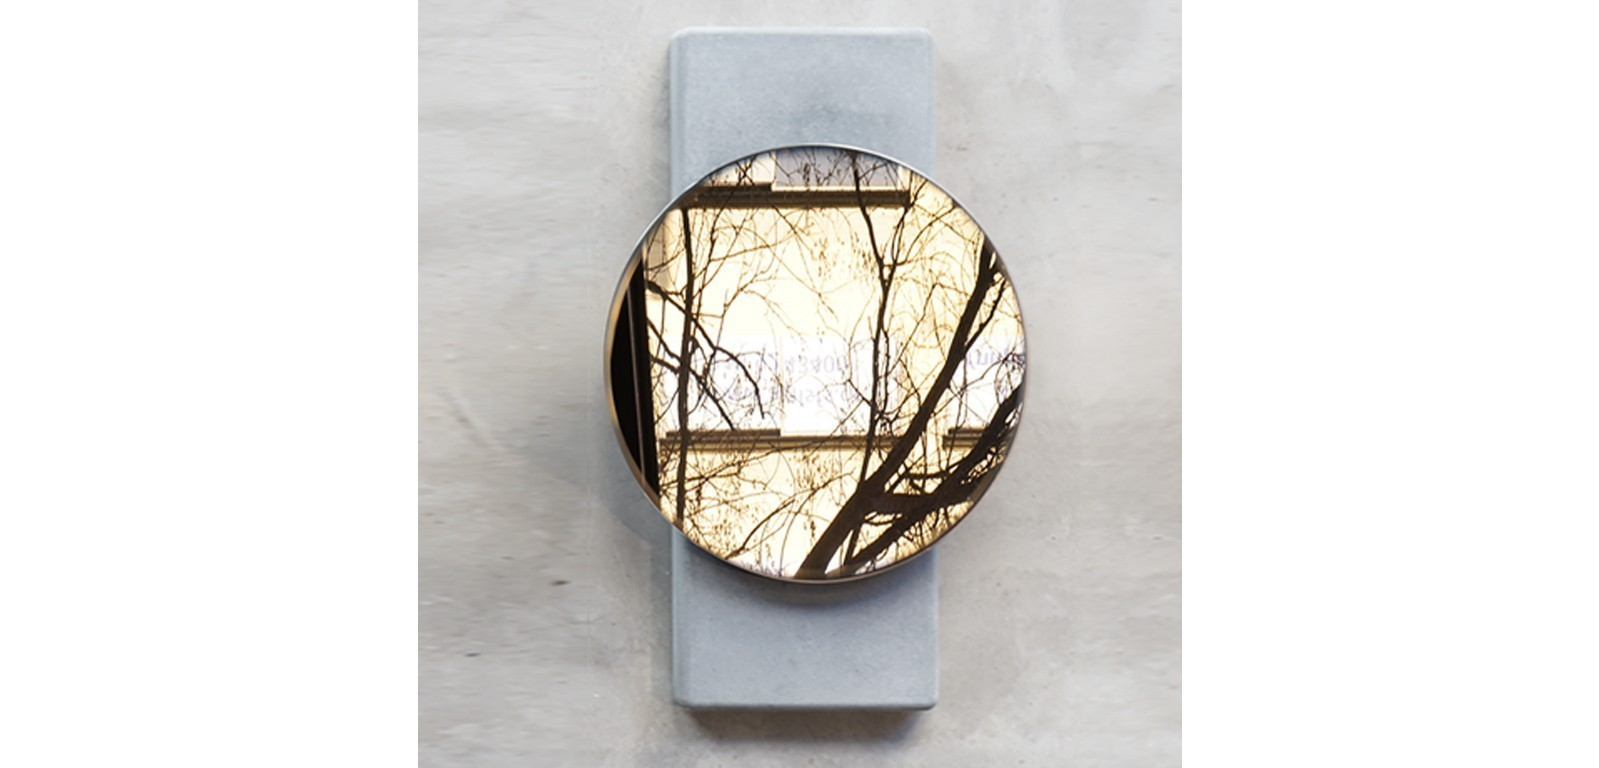 MOON-wall-mirror-concrete-minimal-handmade-alentes-brass-copper-white-black